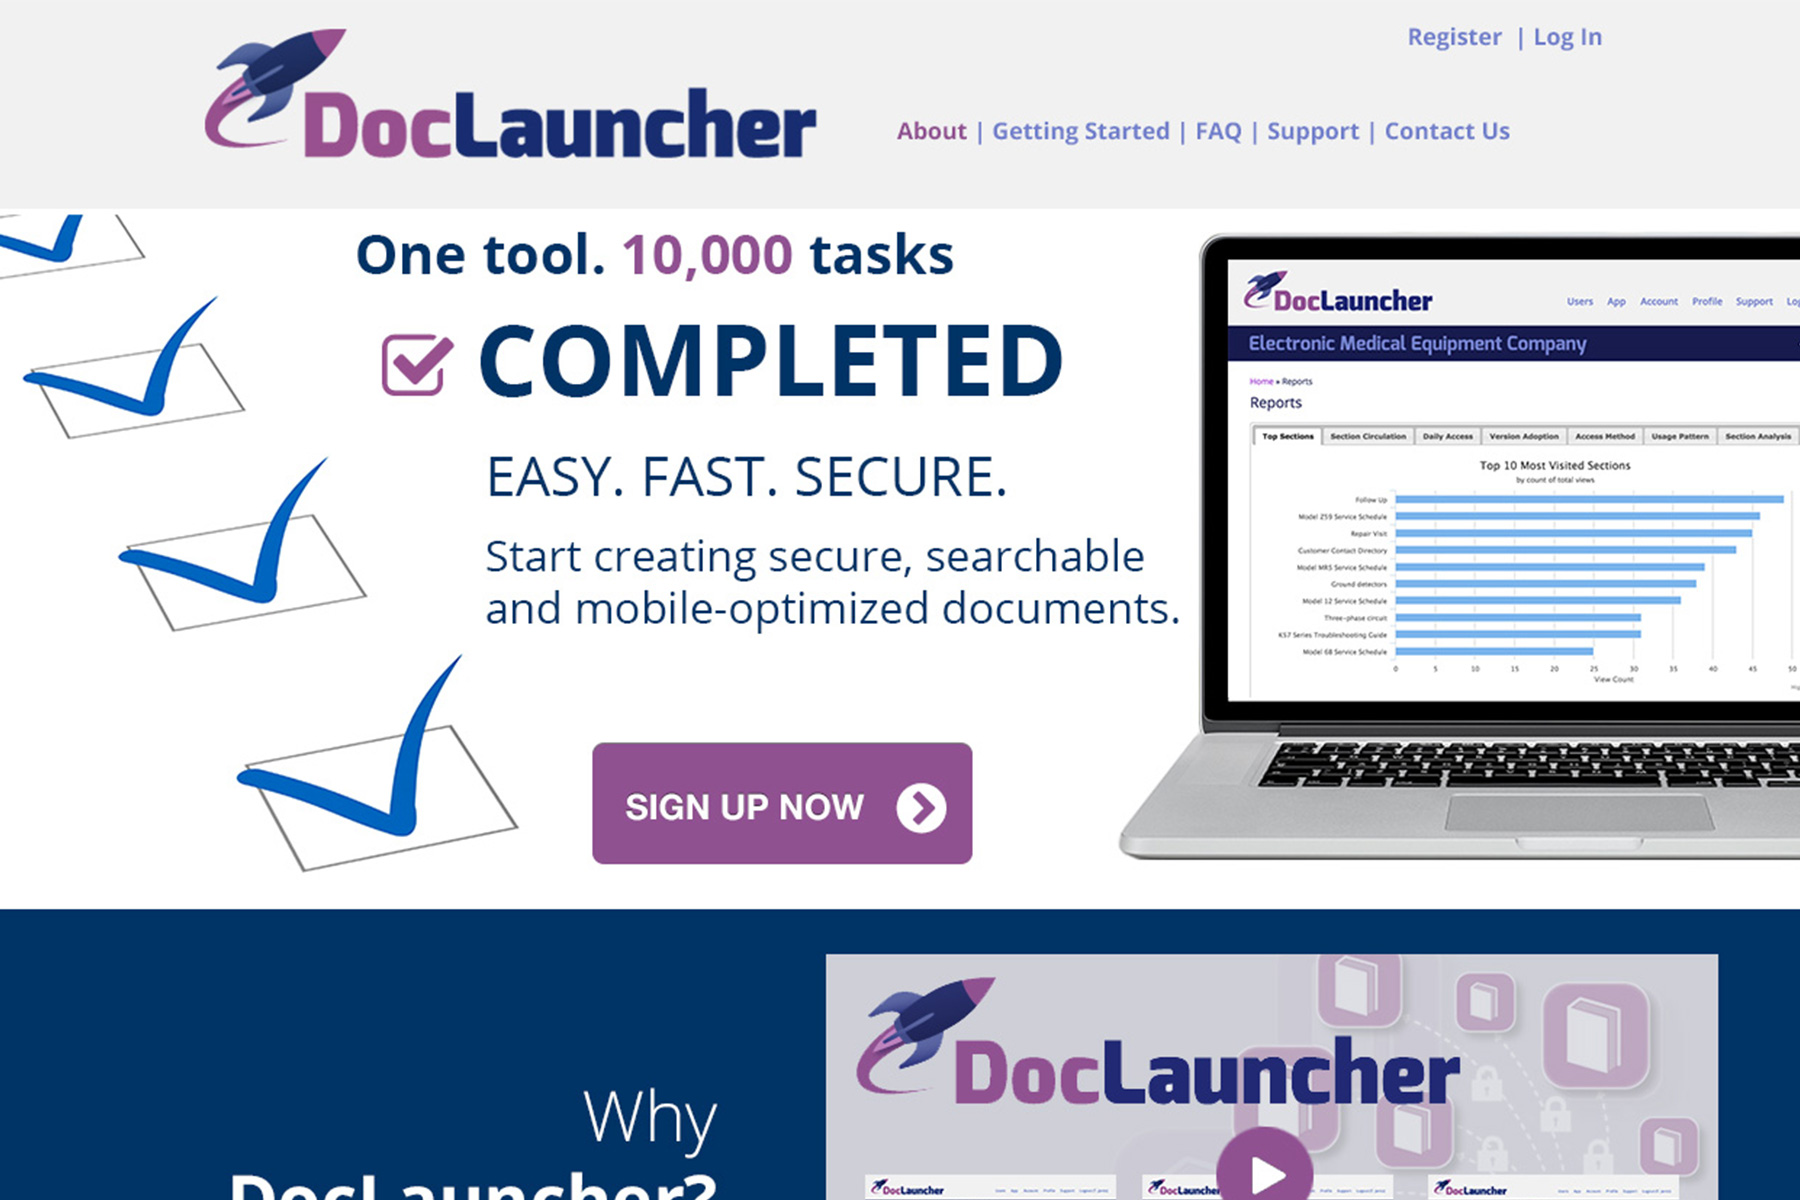 DocLauncher.com remodel – A Cross Platform CMS for Mobile Apps